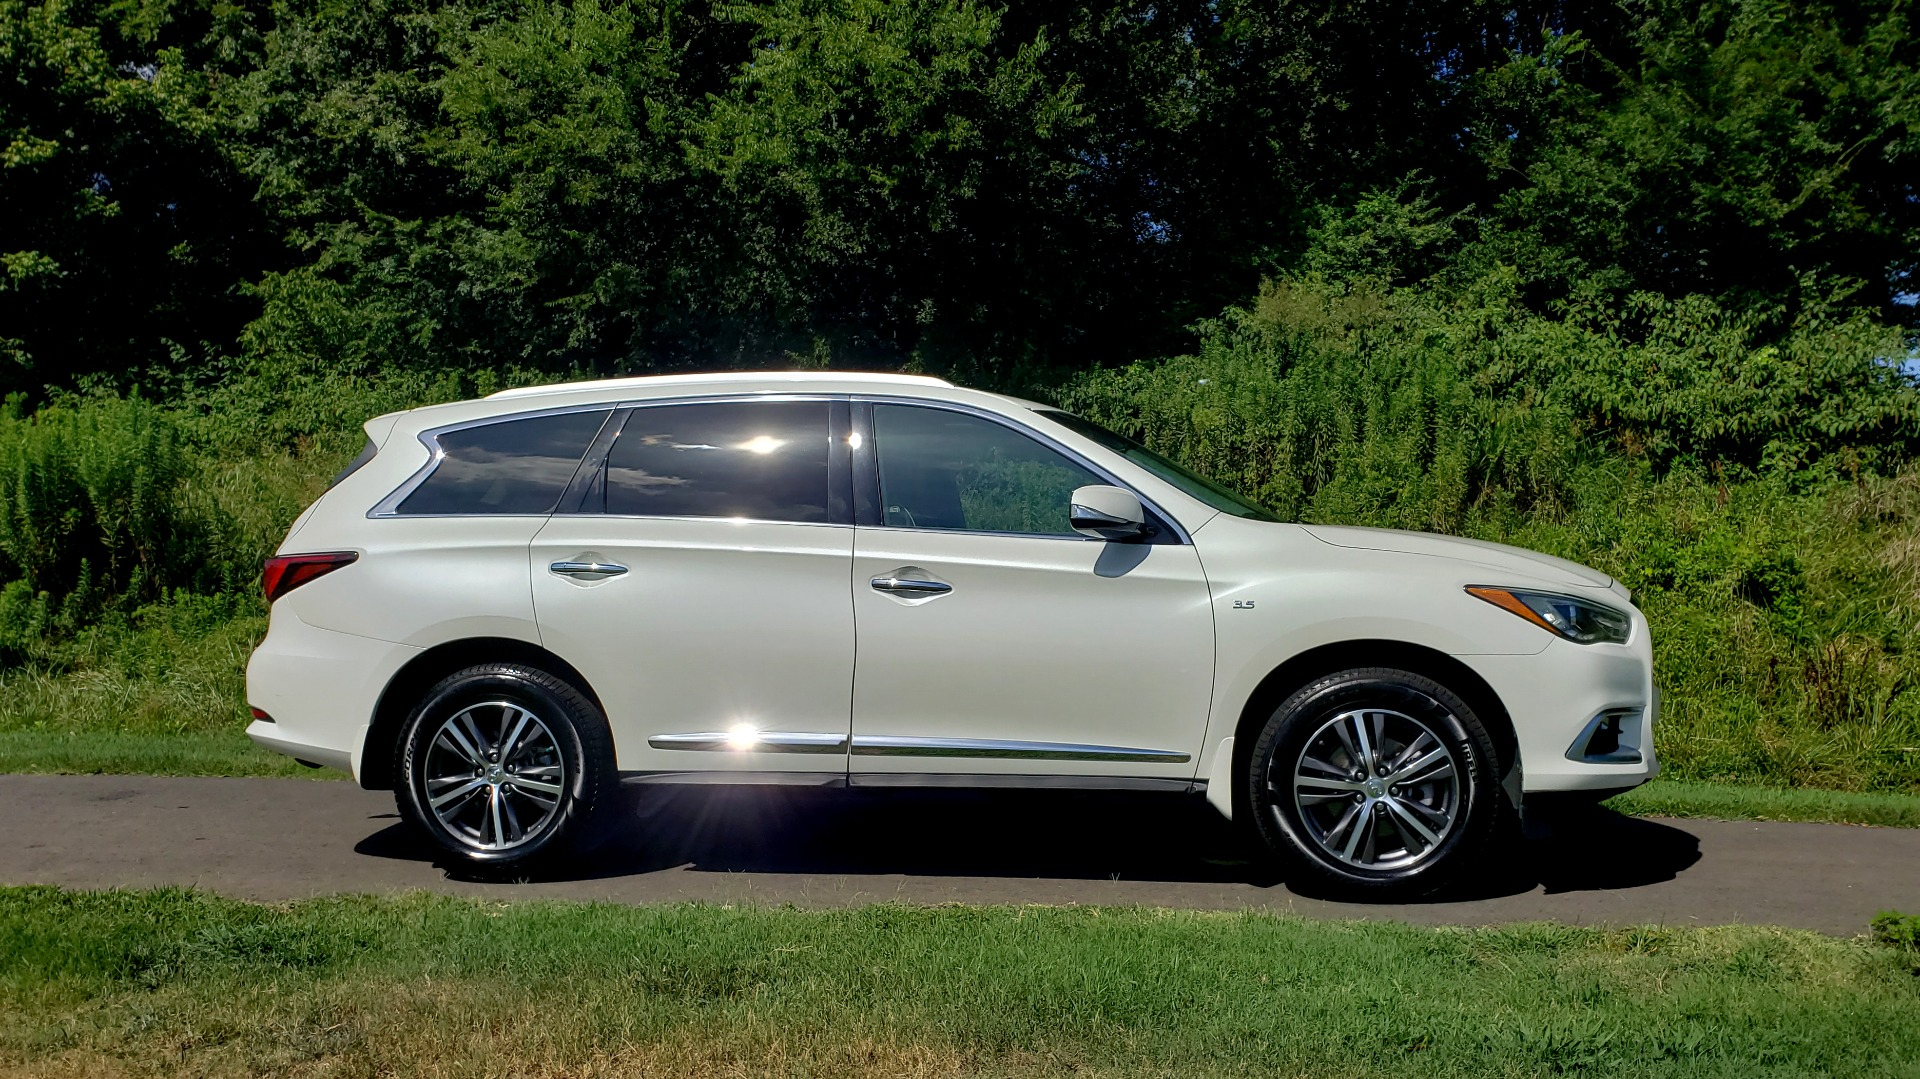 Used 2016 Infiniti QX60 AWD / 3.5L V6 / SUNROOF / HTD STS / 3-ROW / TOWING / REARVIEW for sale Sold at Formula Imports in Charlotte NC 28227 7